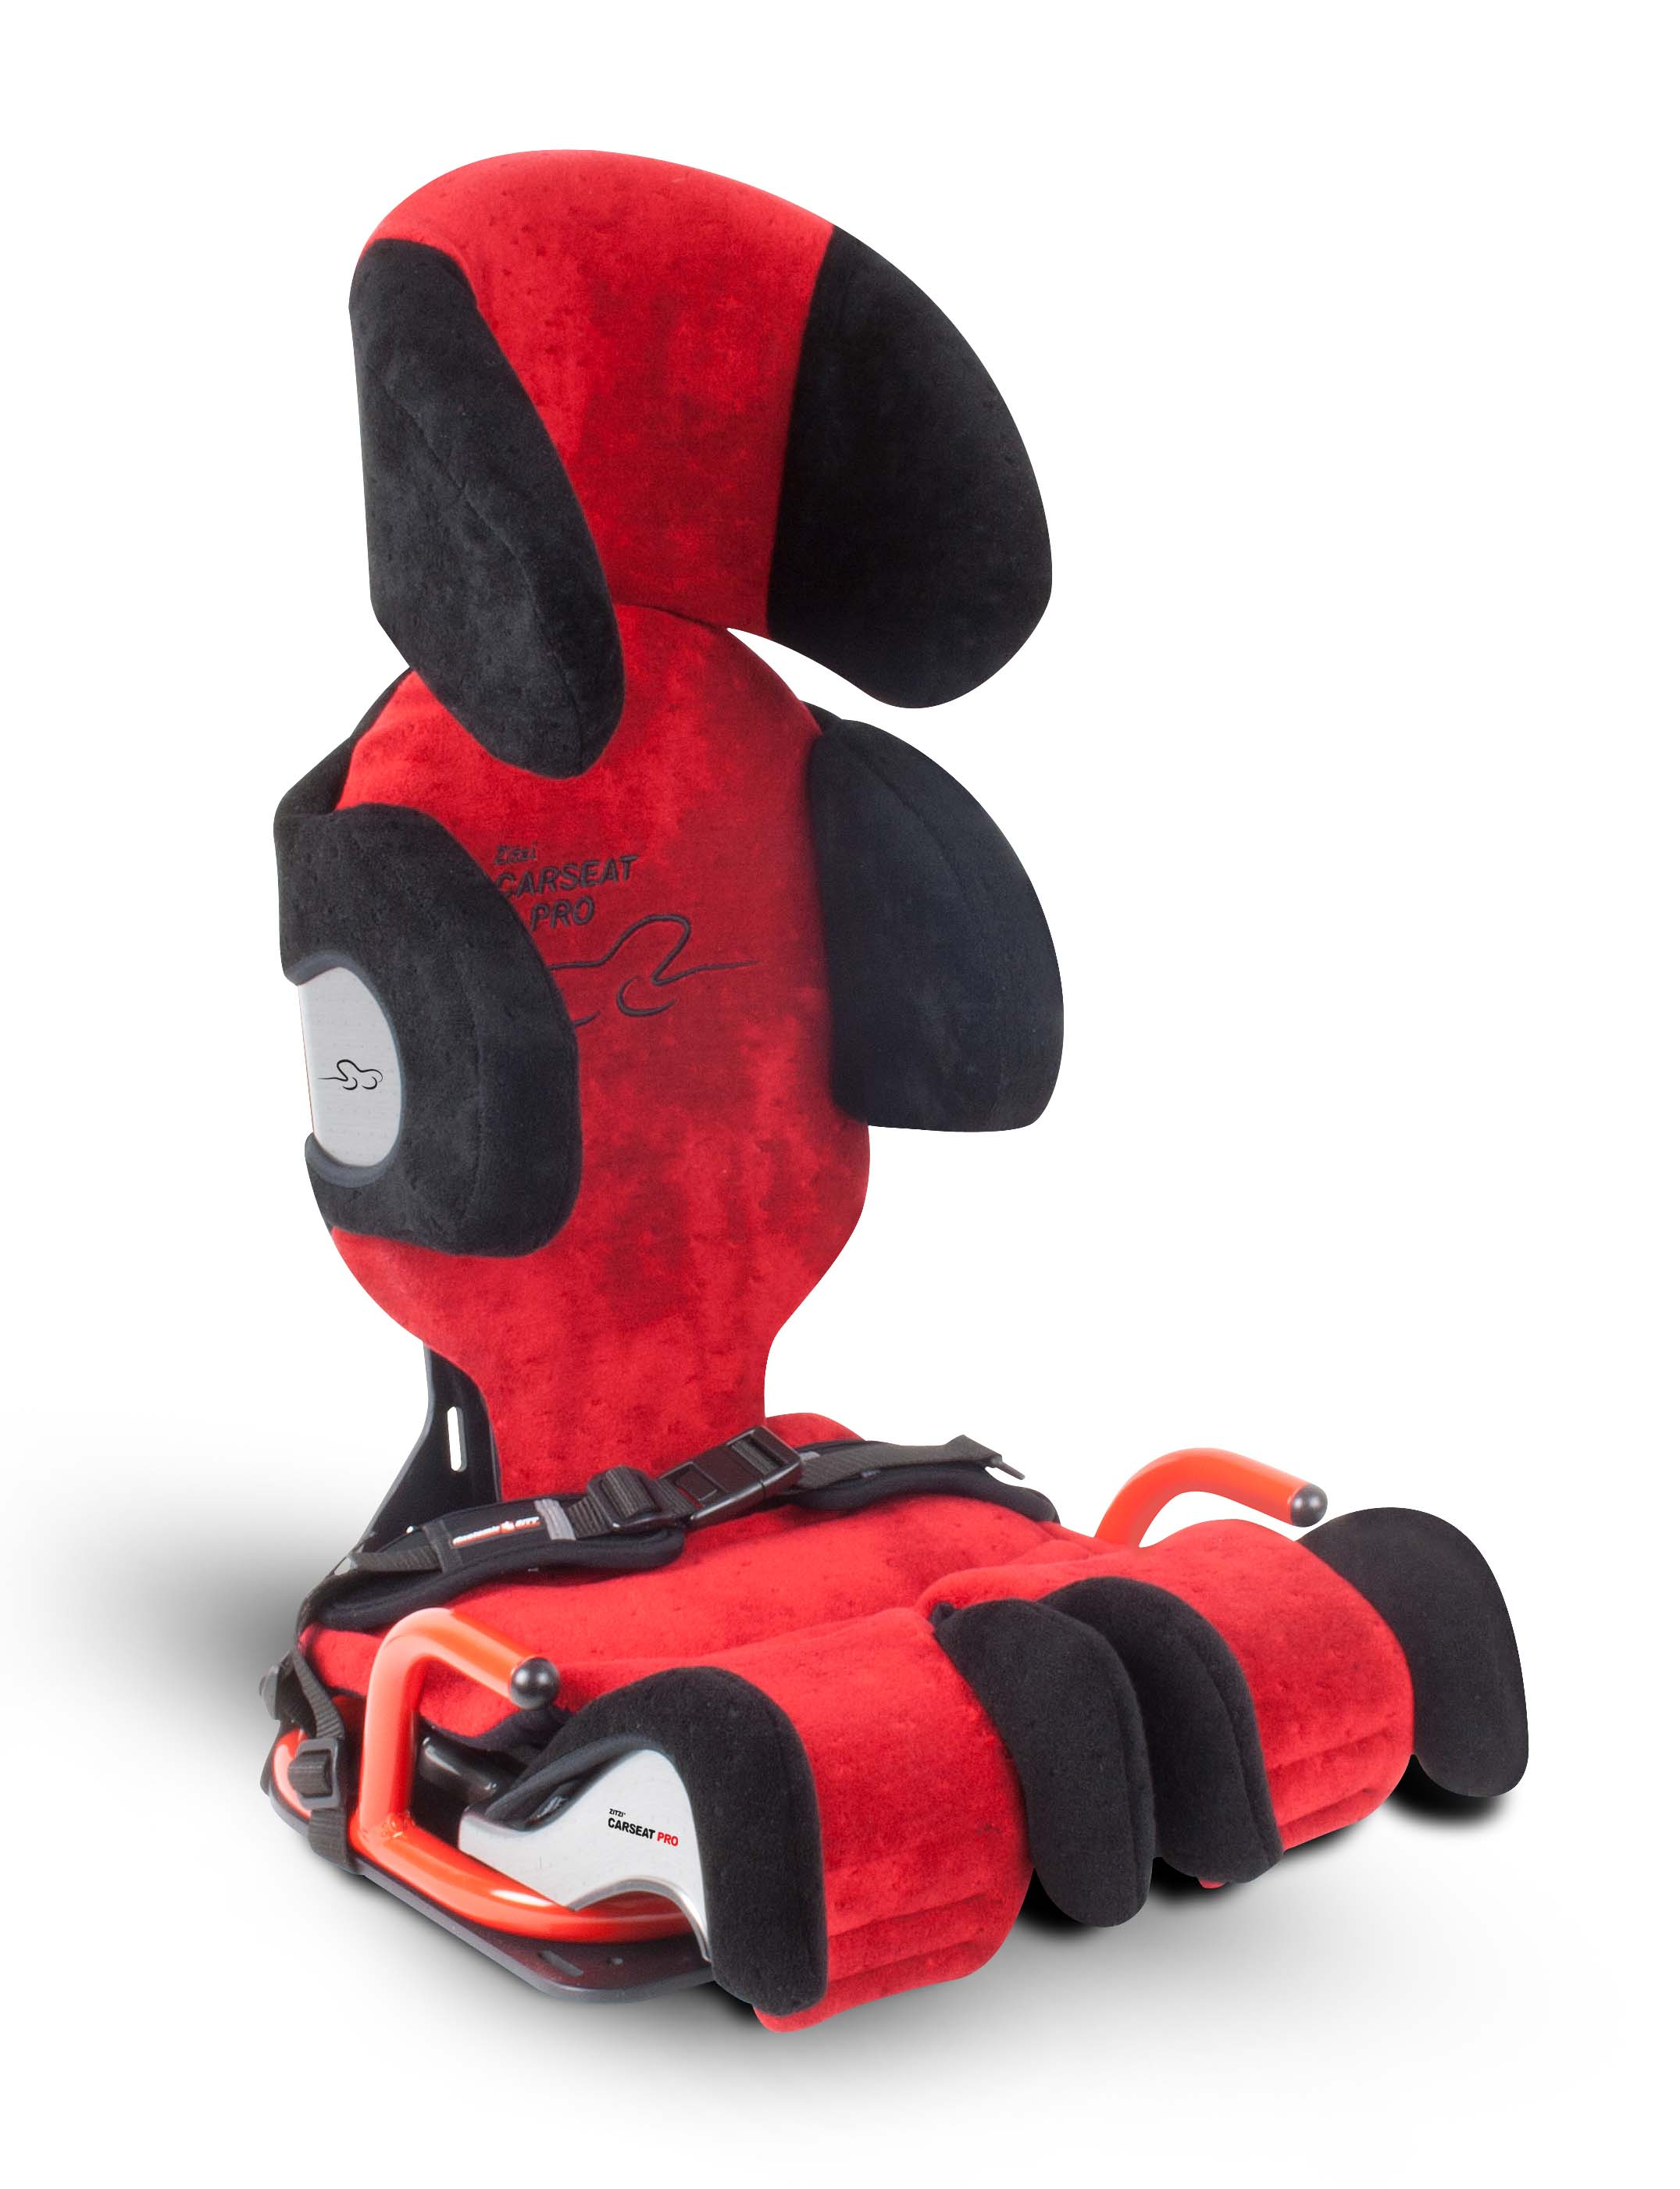 Carseat Pro Living Made Easy